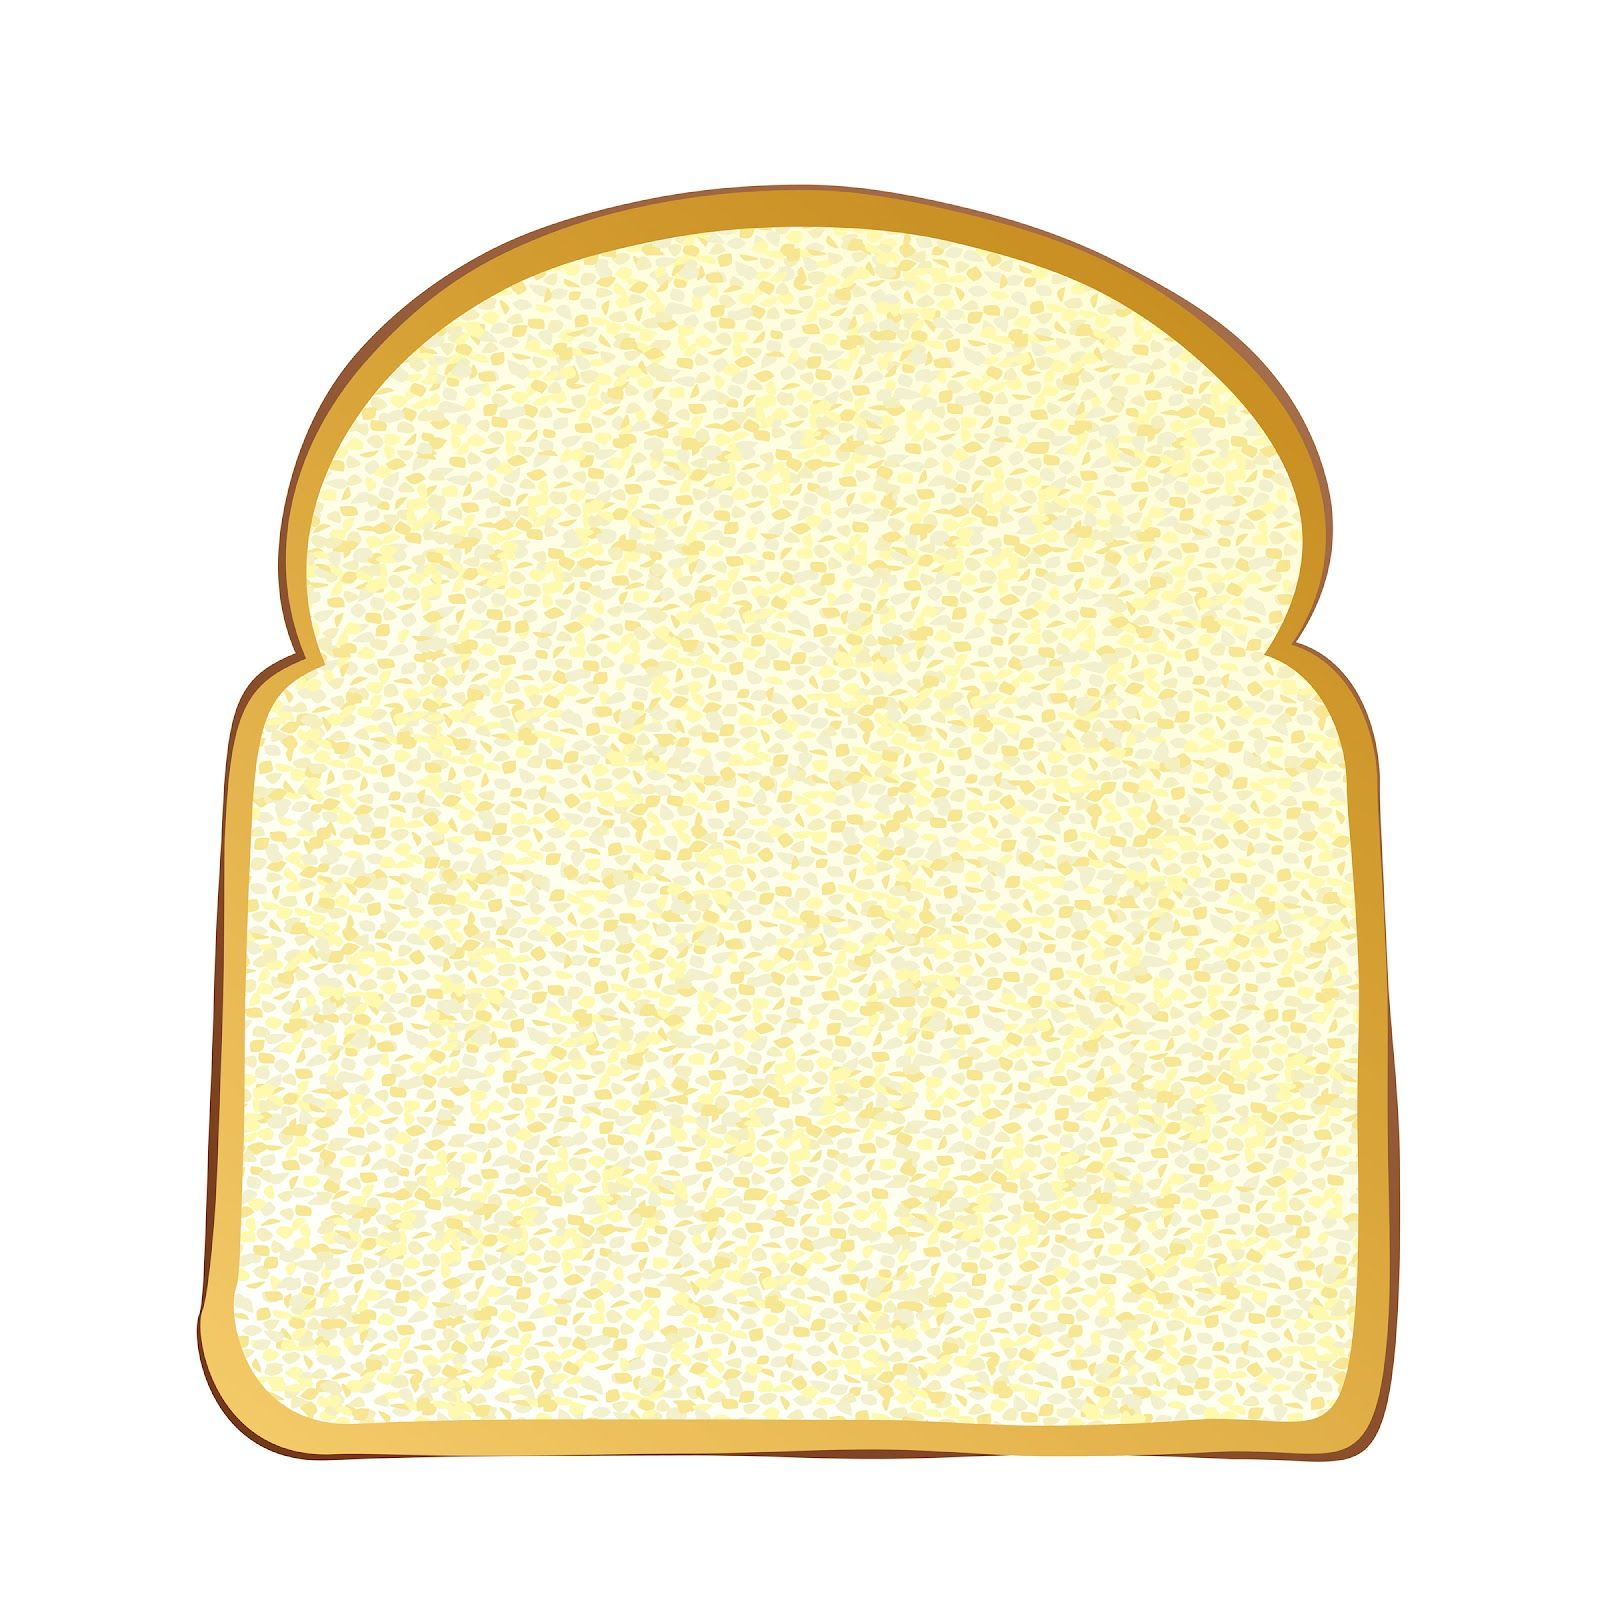 slice of bread template | get bread toast bread get knife | coloring ...